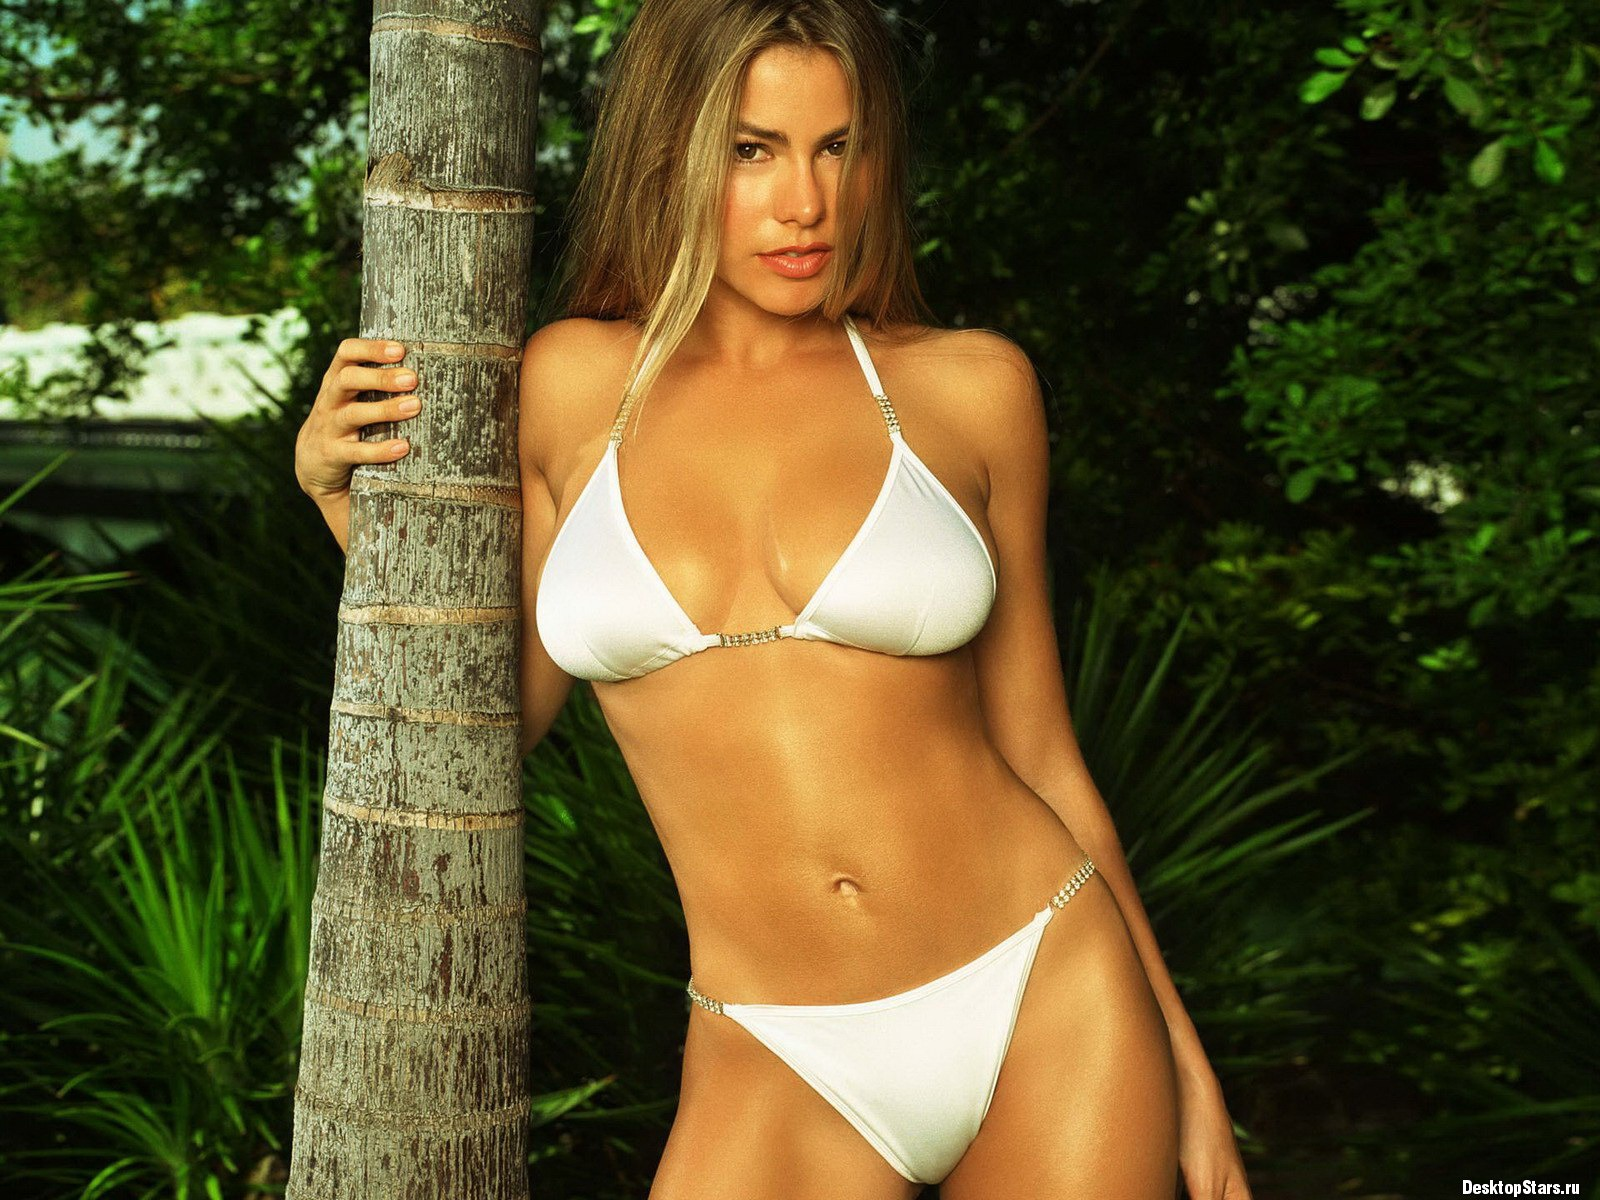 Sofia Vergara #054 - 1600x1200 Wallpapers Pictures Photos Images